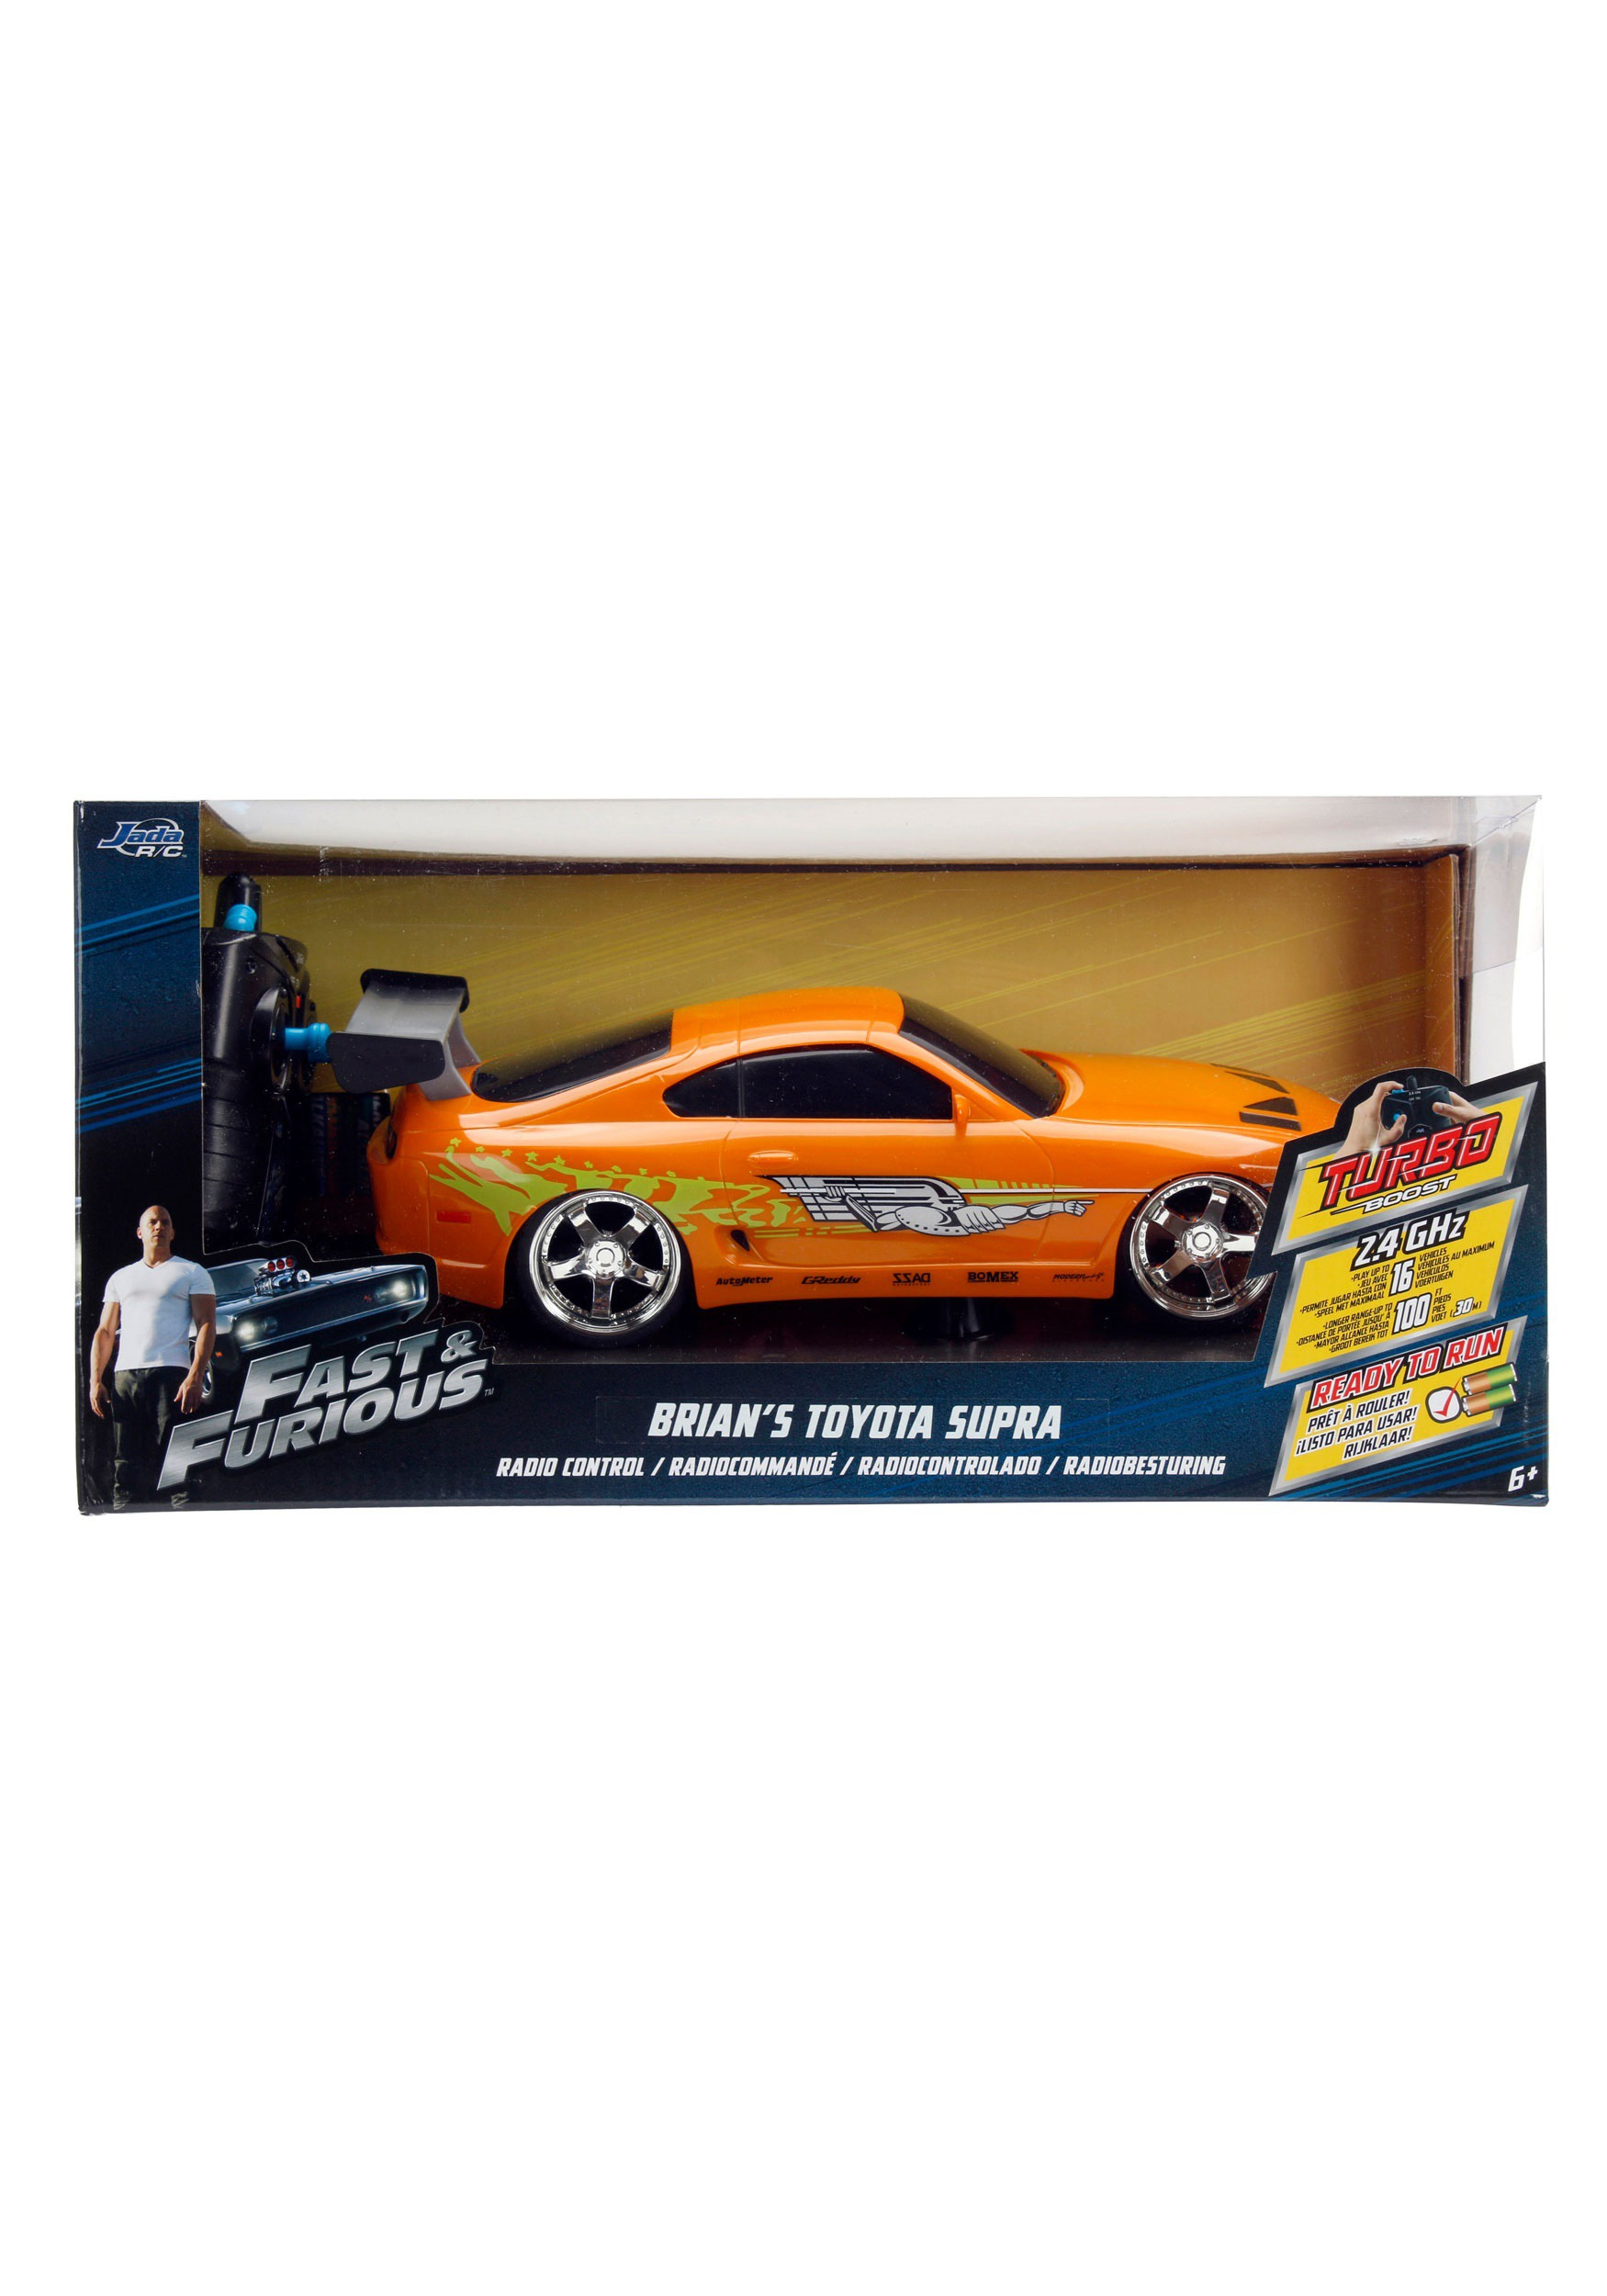 Toyota Supra From The Fast And The Furious Fast The Furious Toyota Supra 1 16 Rc